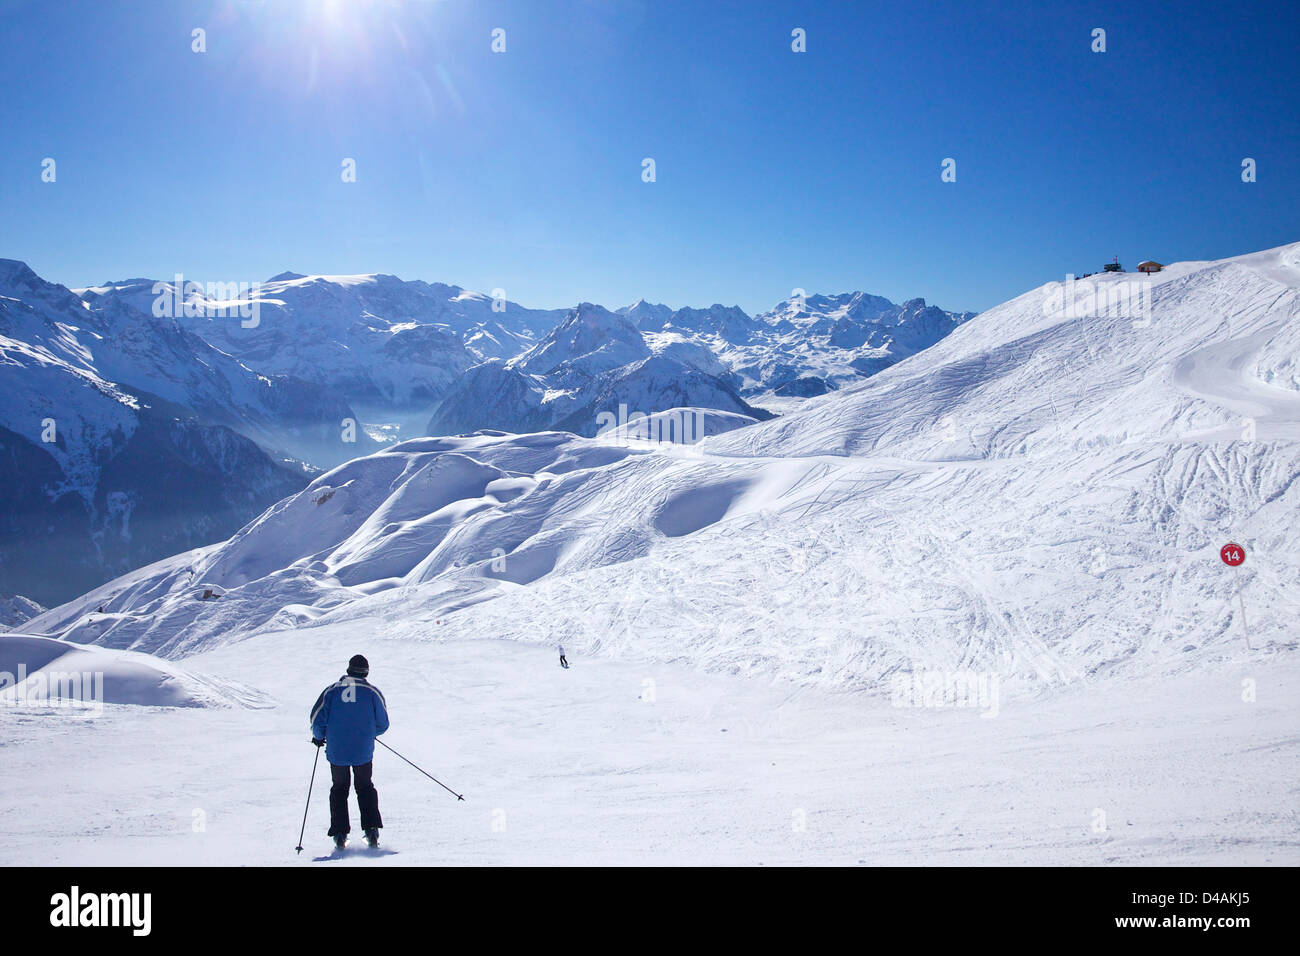 Hara-Kiri red piste from Les Verdons to Champagny, La Plagne, France, Europe - Stock Image